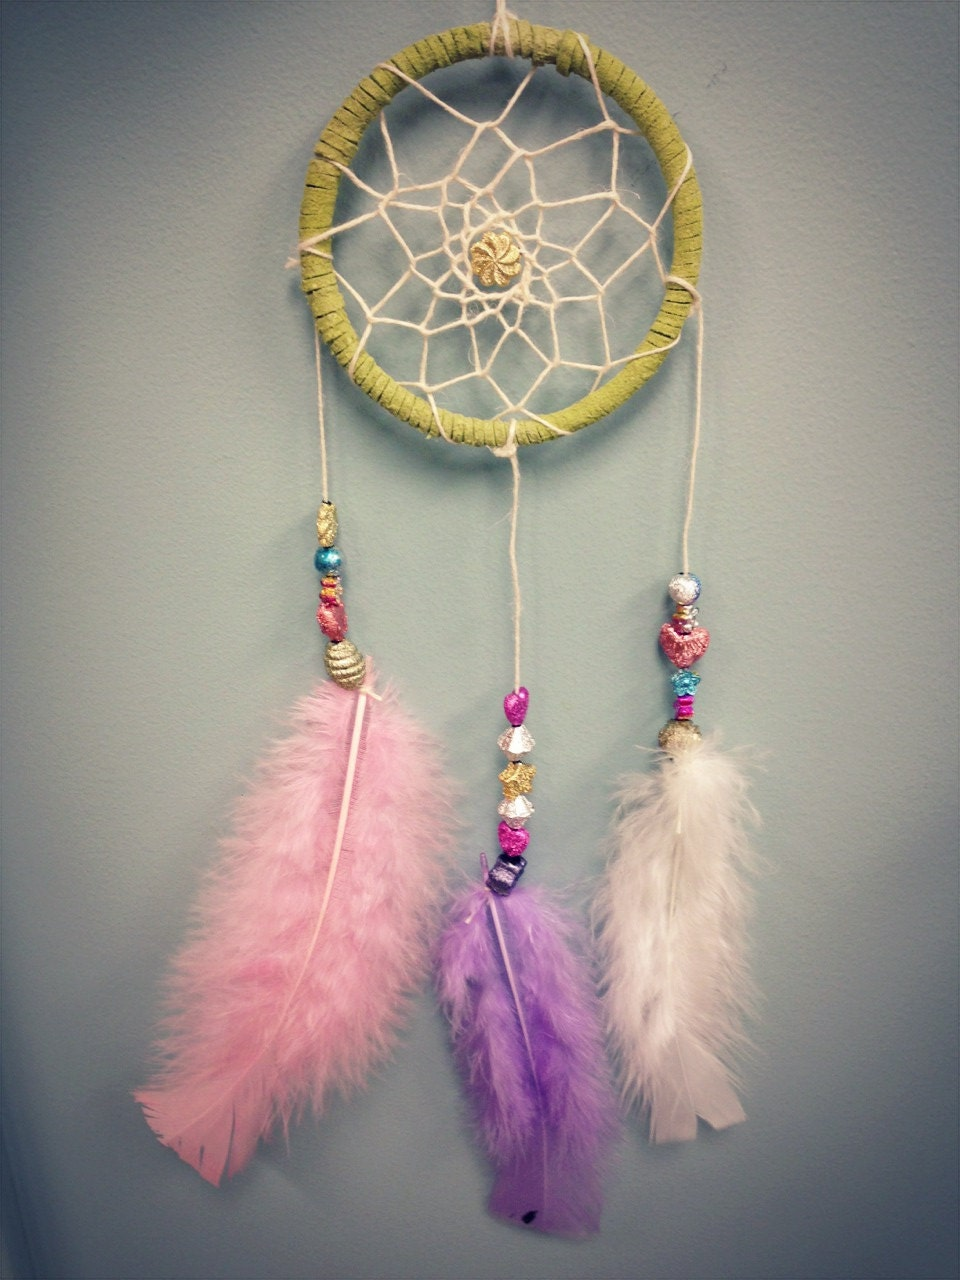 Crafts kit dream catcher materials instructions by for Materials to make a dreamcatcher